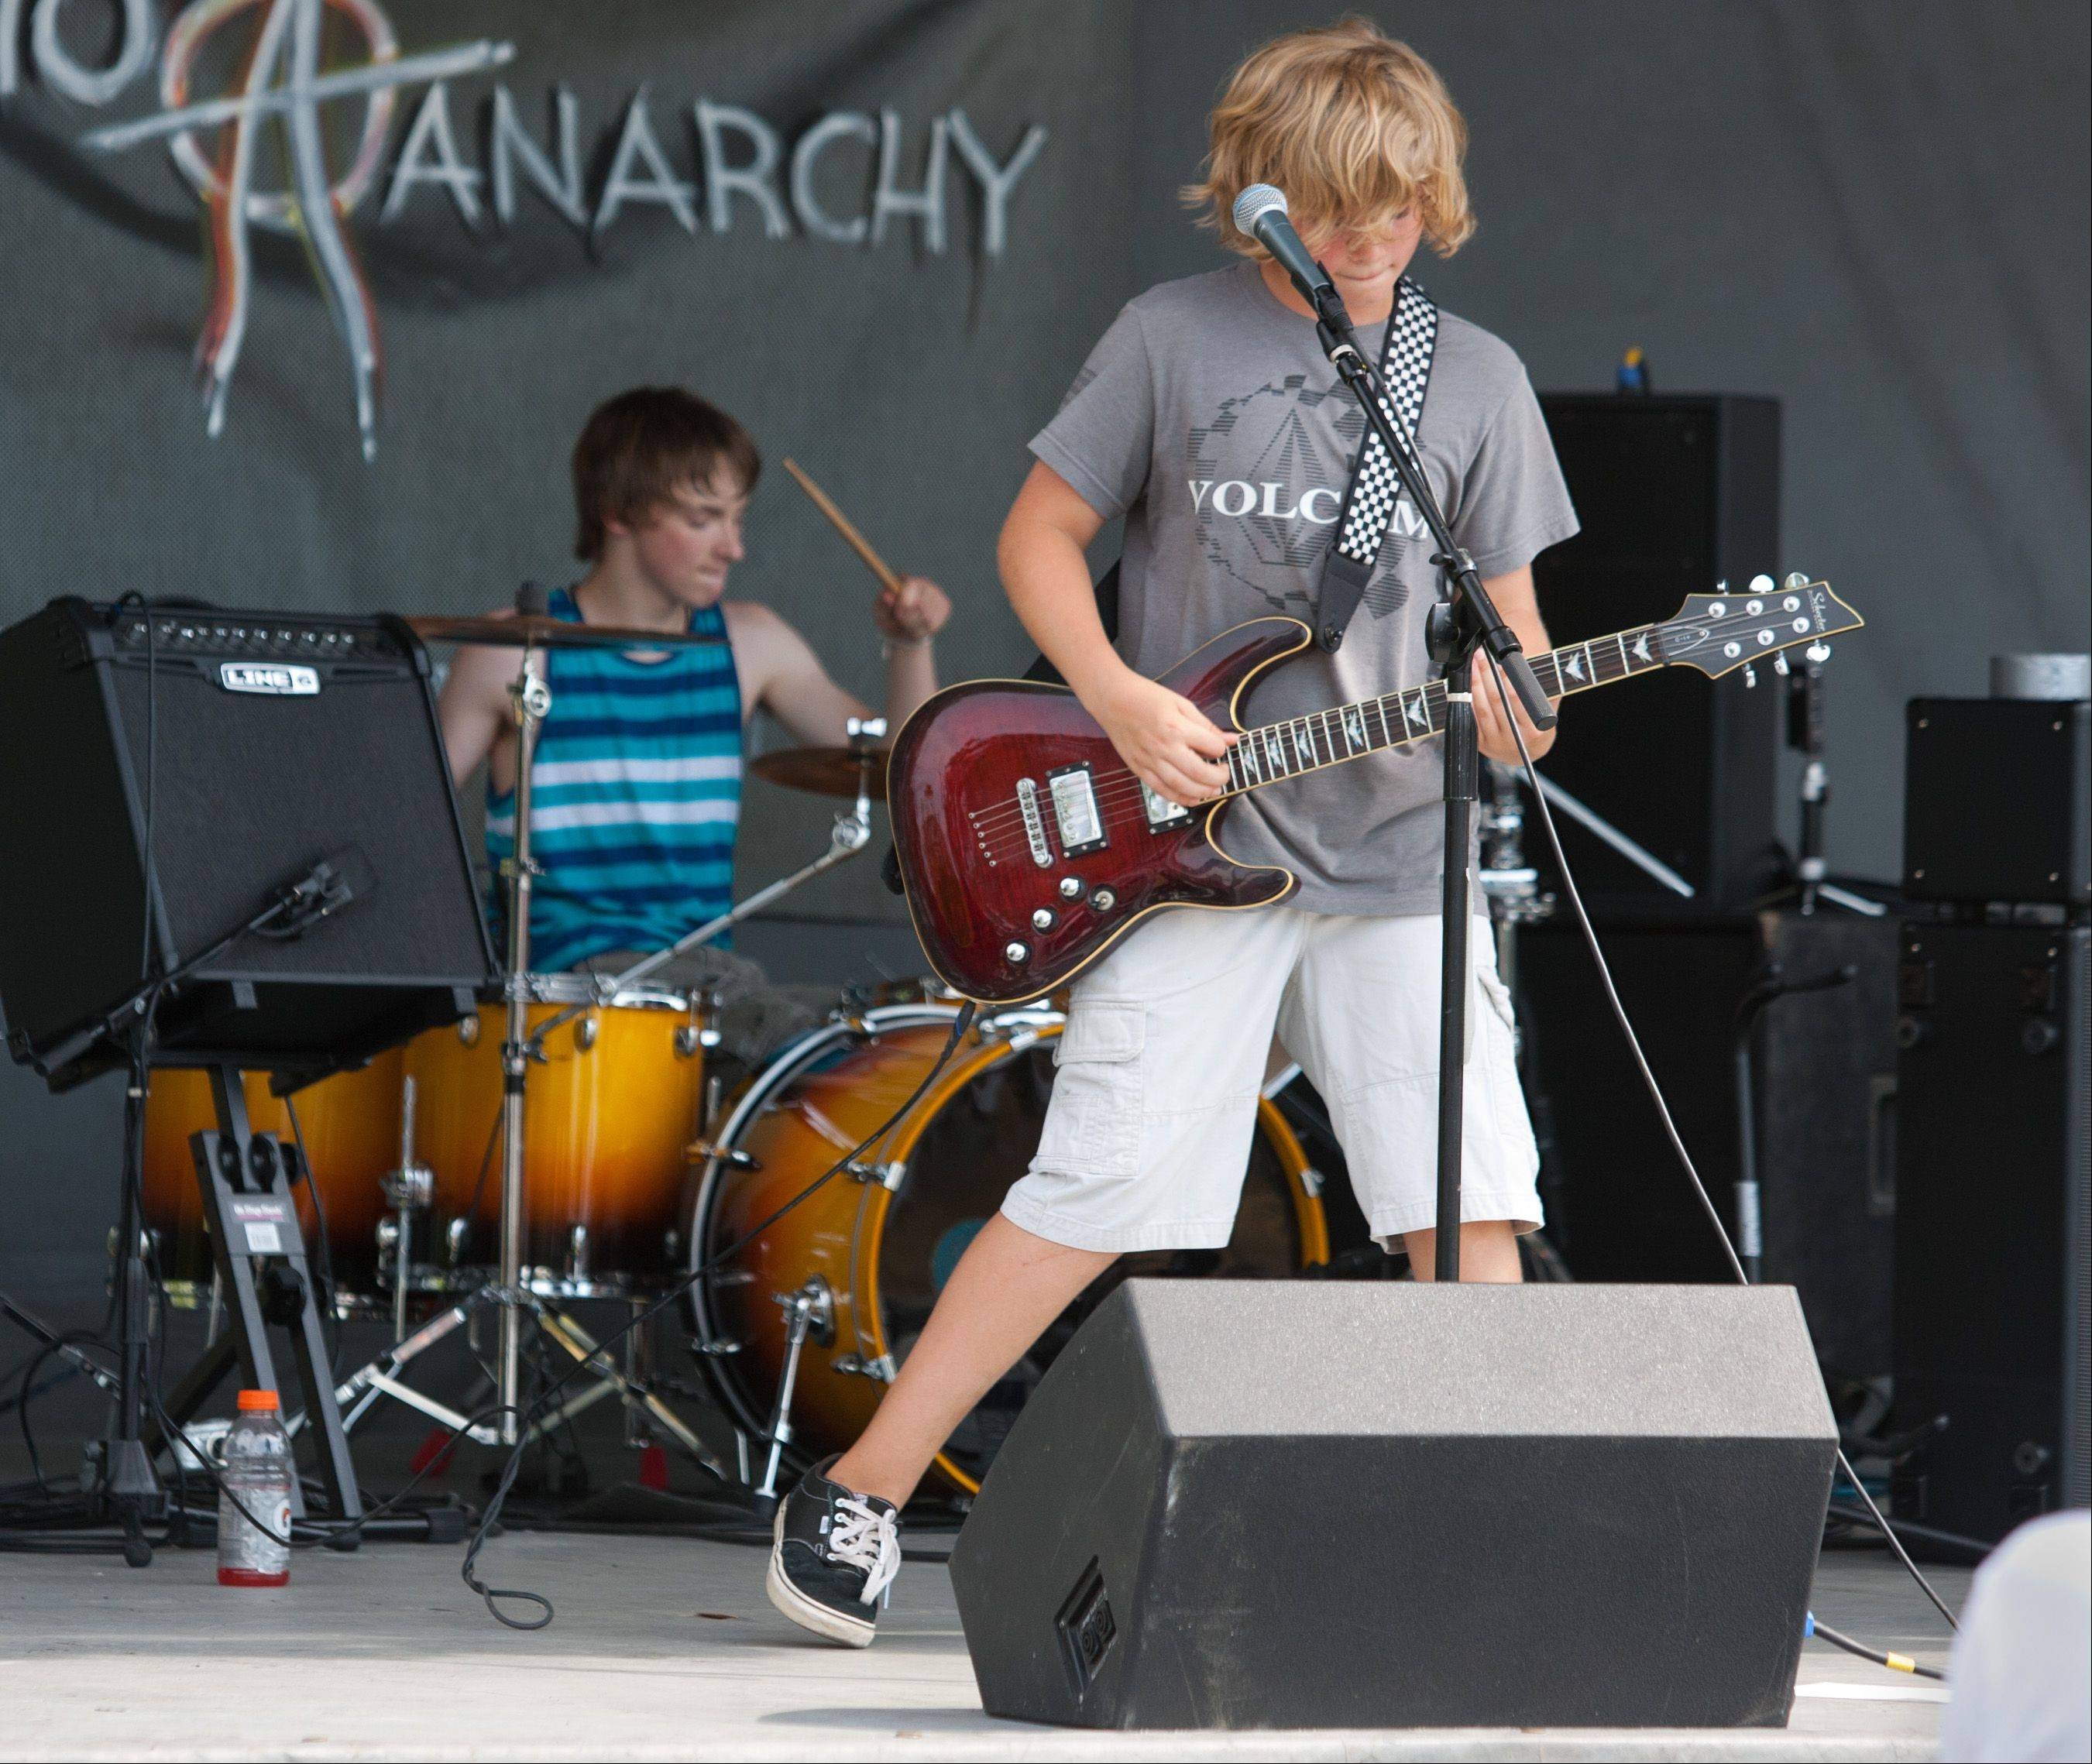 Audio Anarchy Band members Jeremy Whitmore of Elmhurst plays guitar while Tony Tedeschi of Wood Dale plays drums during the Eyes to the Skies Festival in Lisle.